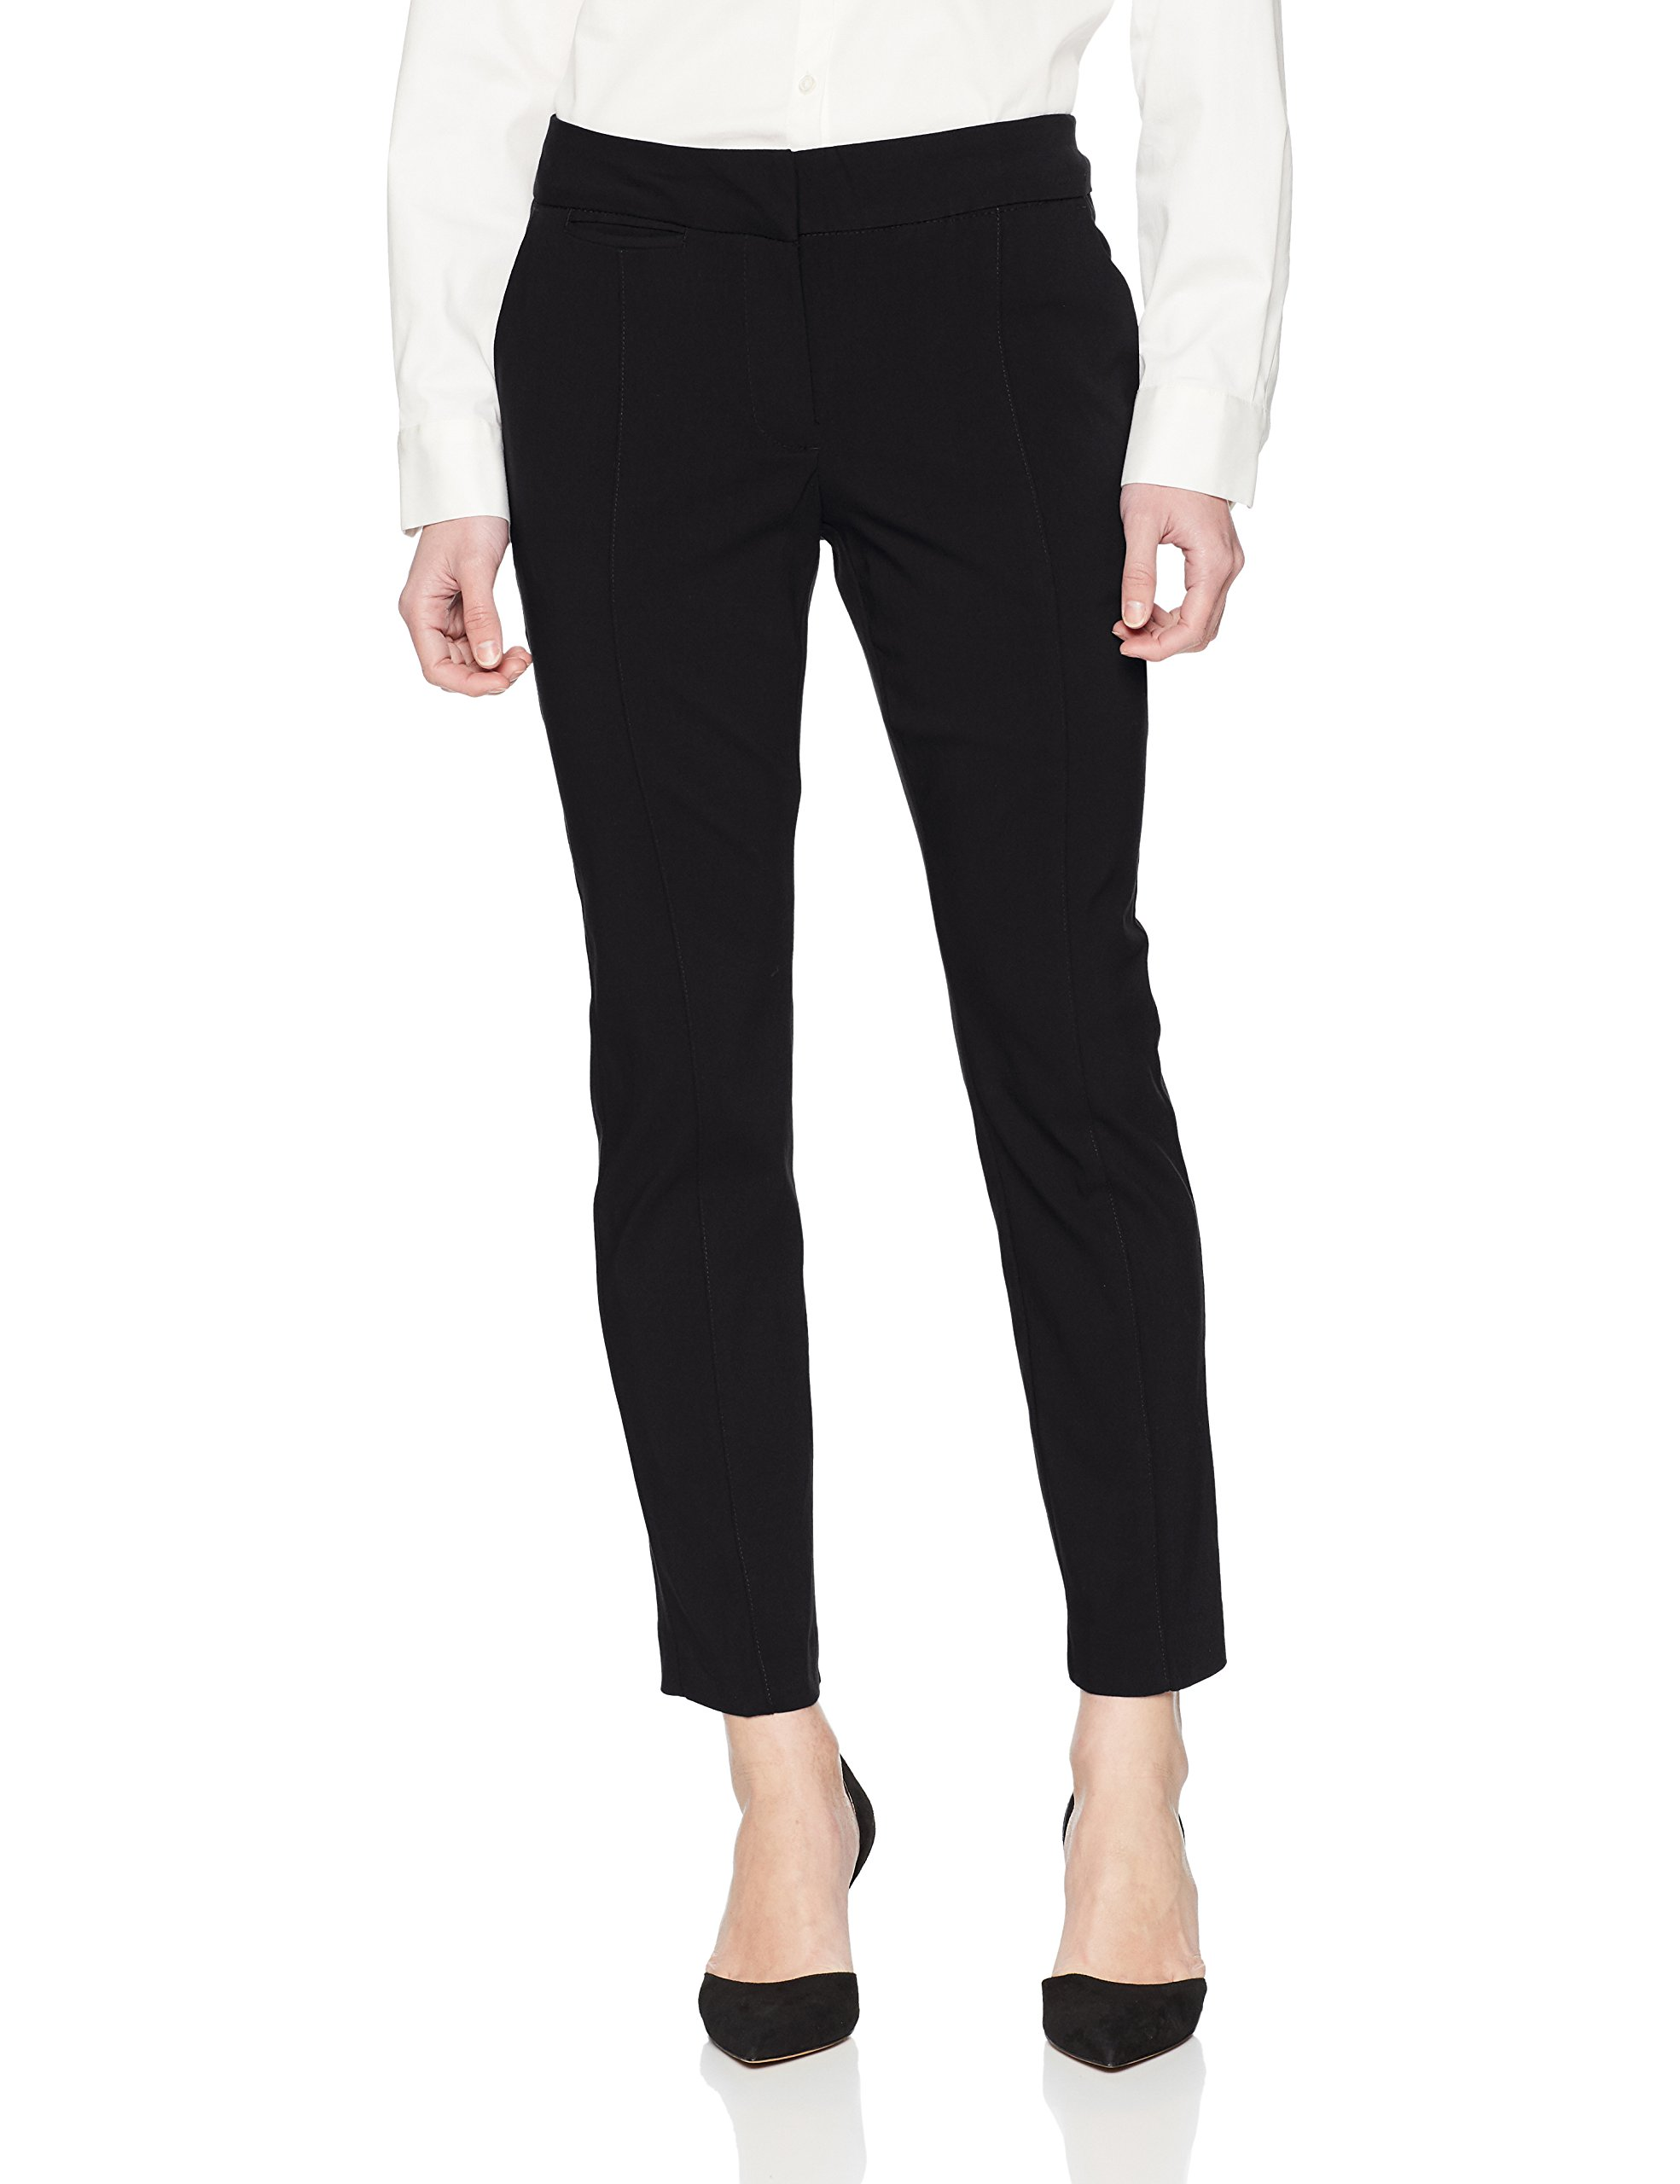 Briggs New York Women's Petite Cigarette Pant, Black, 8P